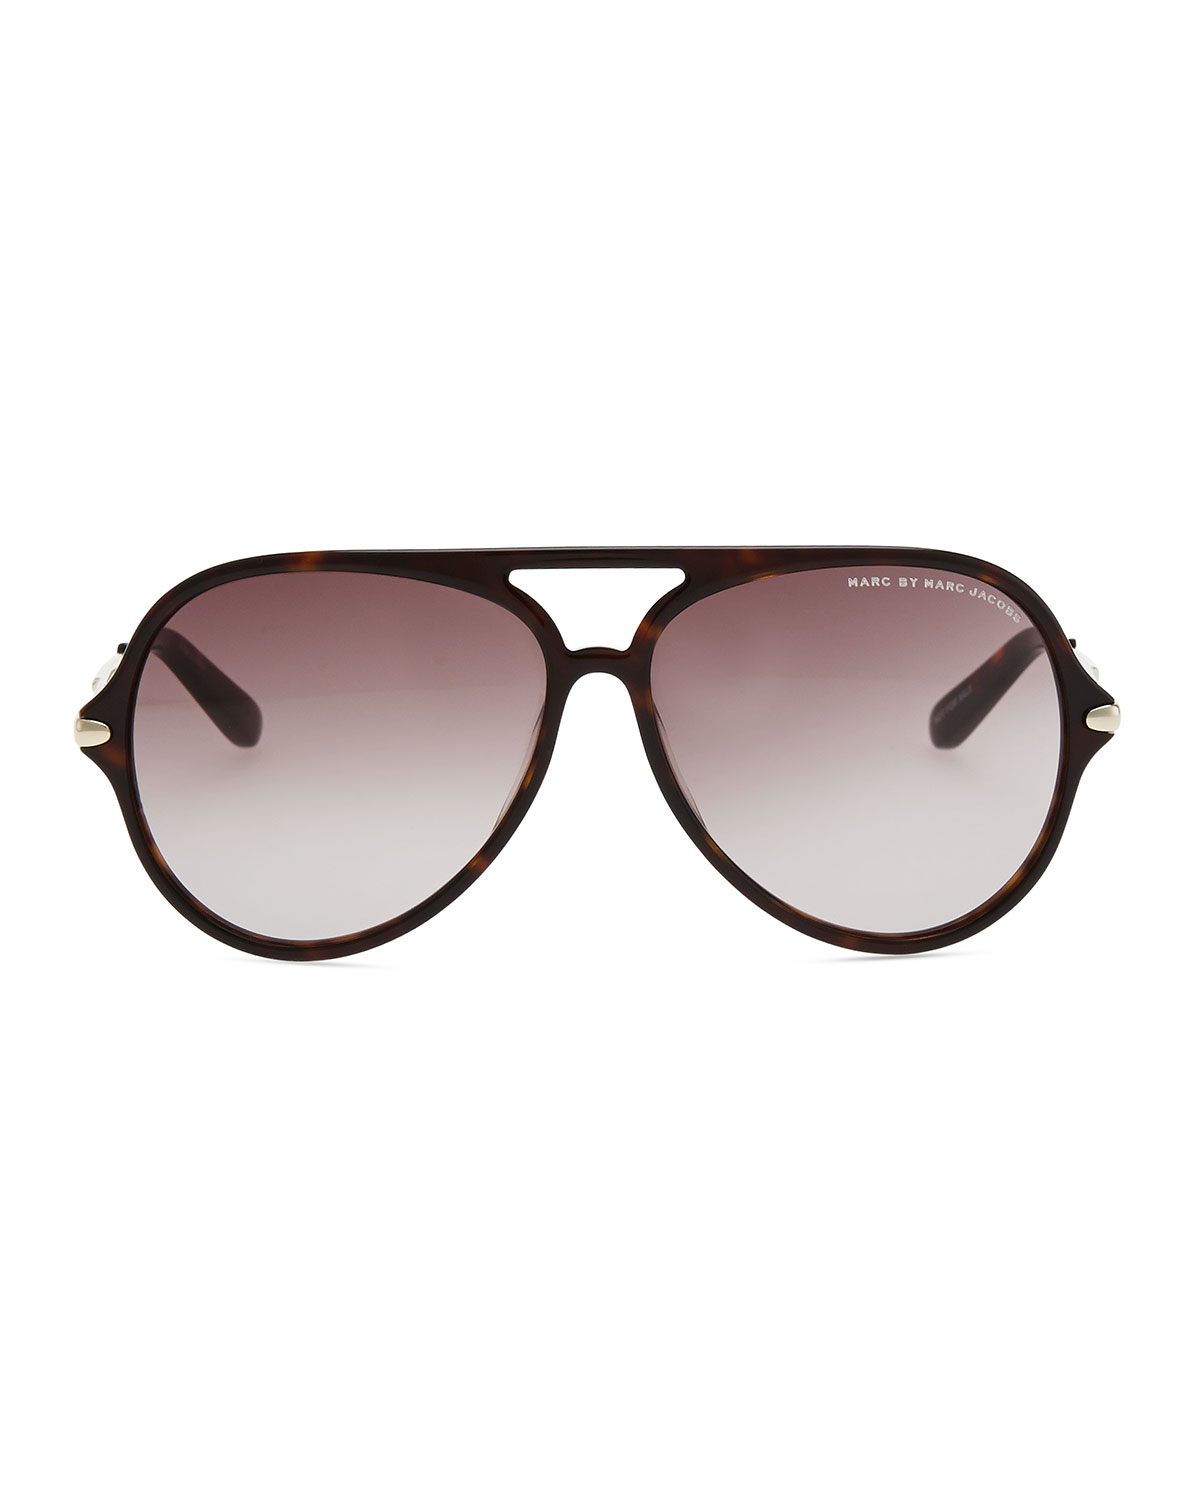 lyst marc by marc jacobs tortoise plastic aviator sunglasses in gray. Black Bedroom Furniture Sets. Home Design Ideas